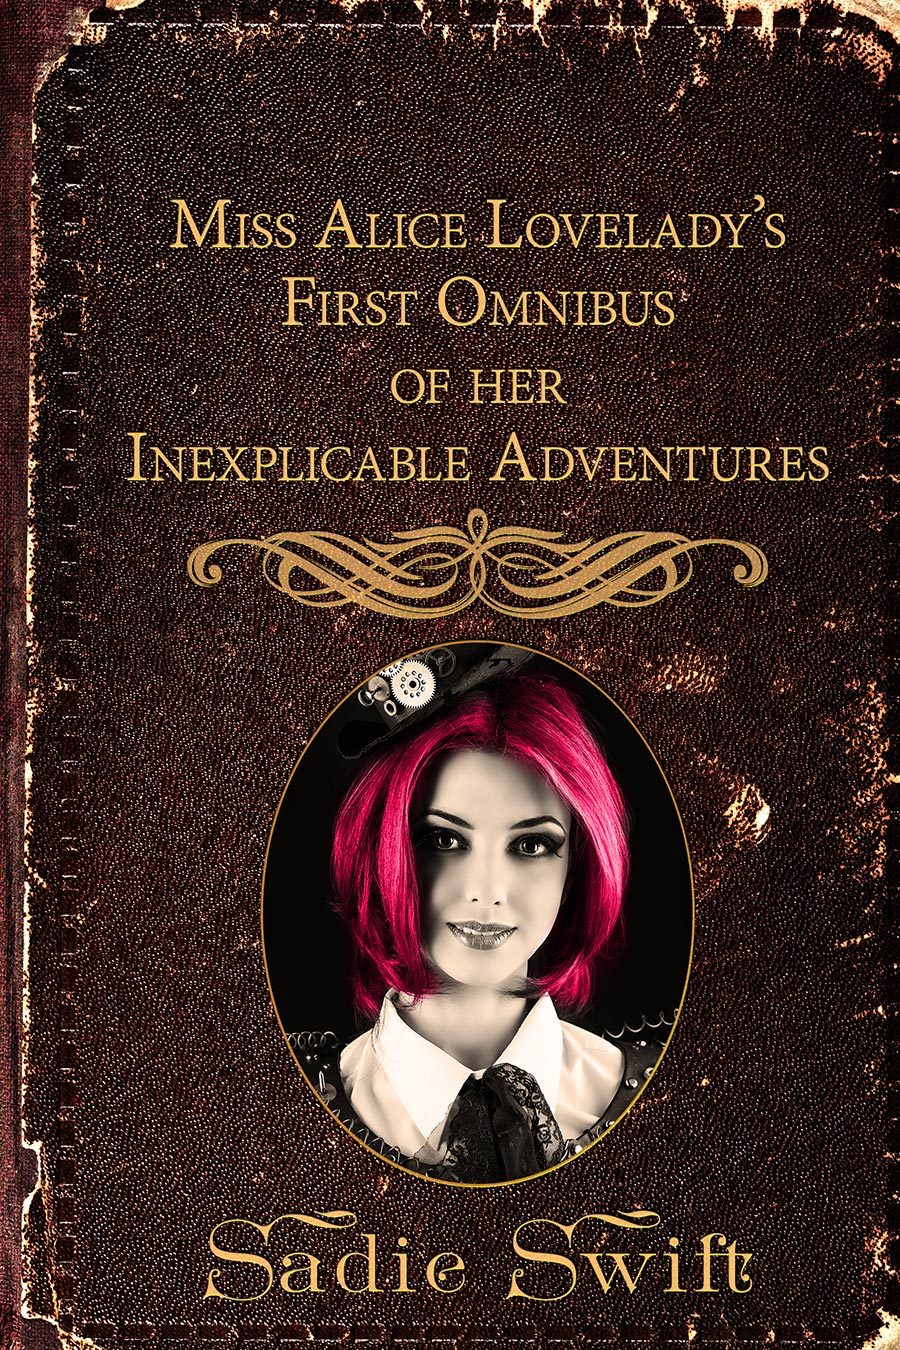 Alice-Lovelady---journal-cover---draft-2.jpg